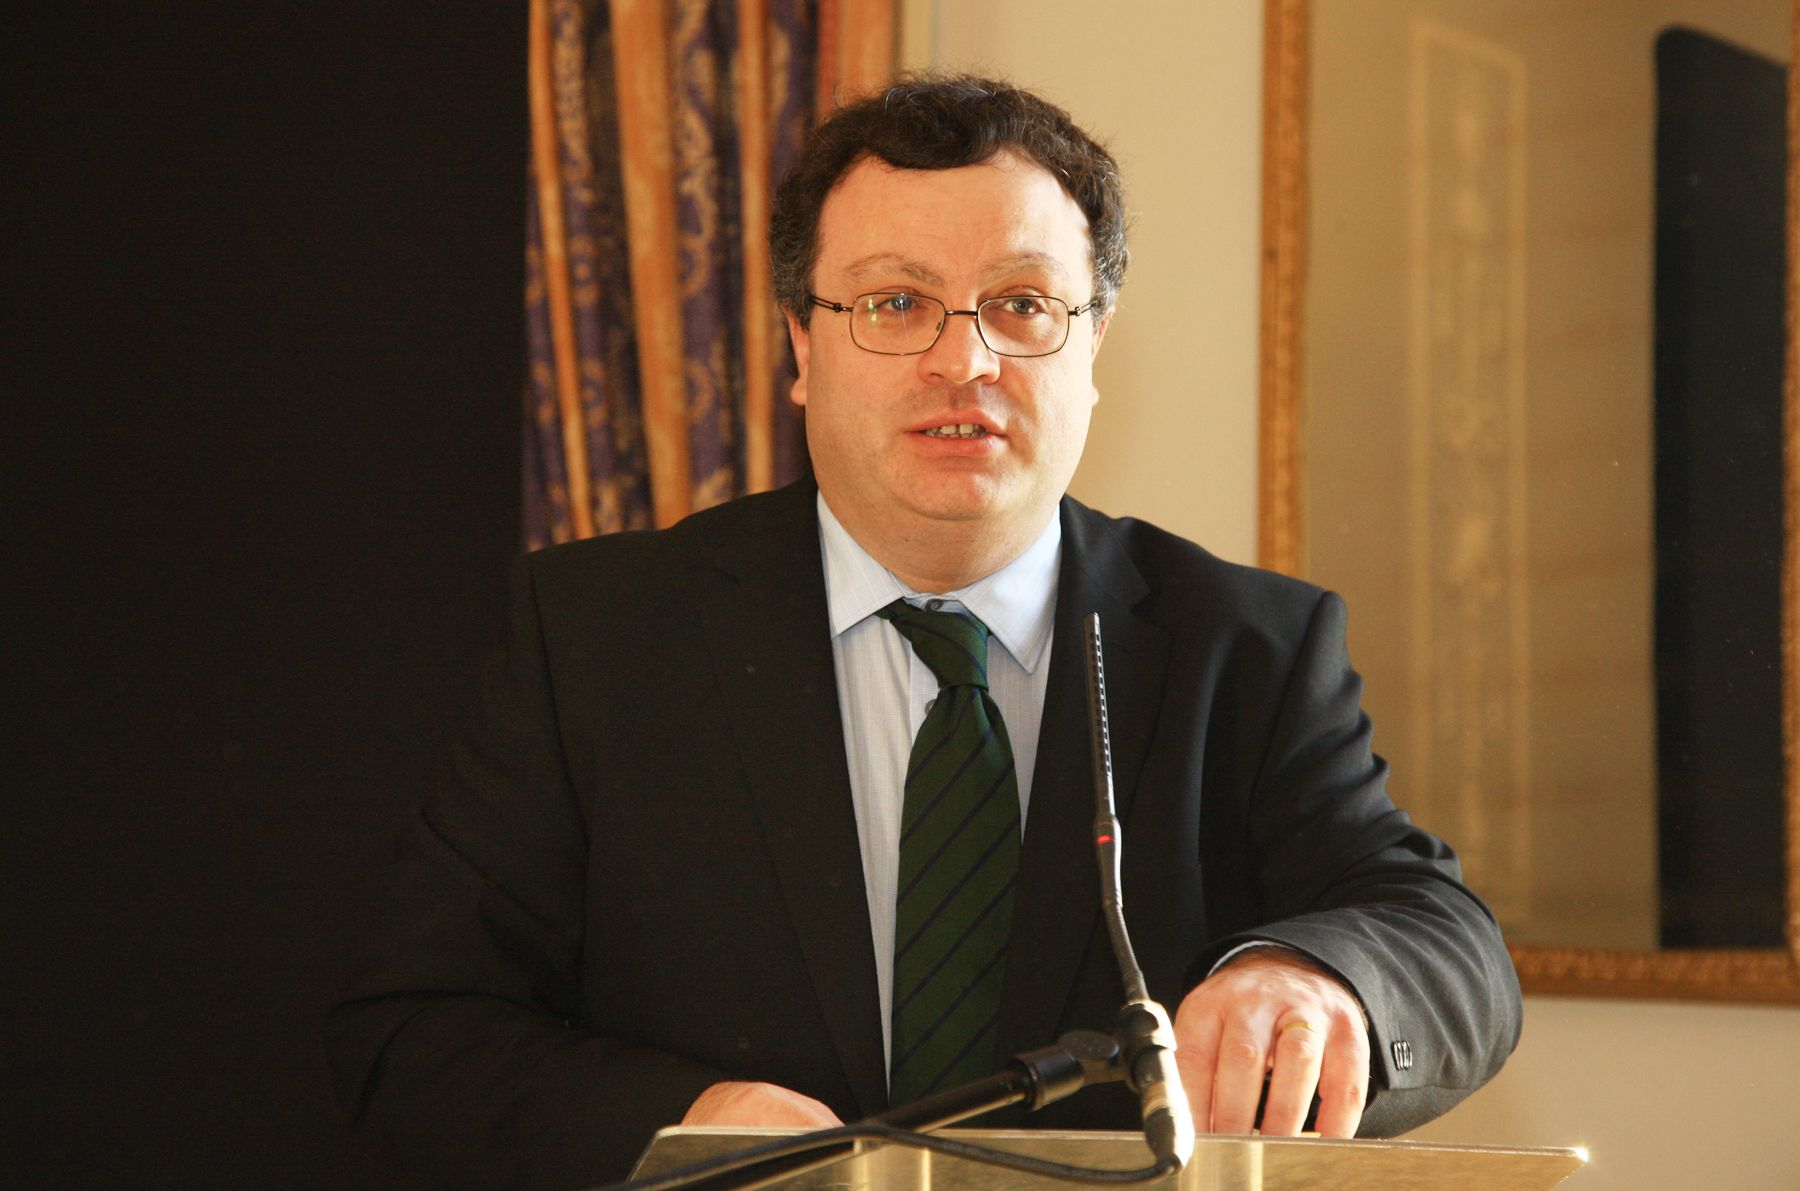 THE RIGHT APPROACH: Stephen Farry is rightly determined not to give the LCCcredibility